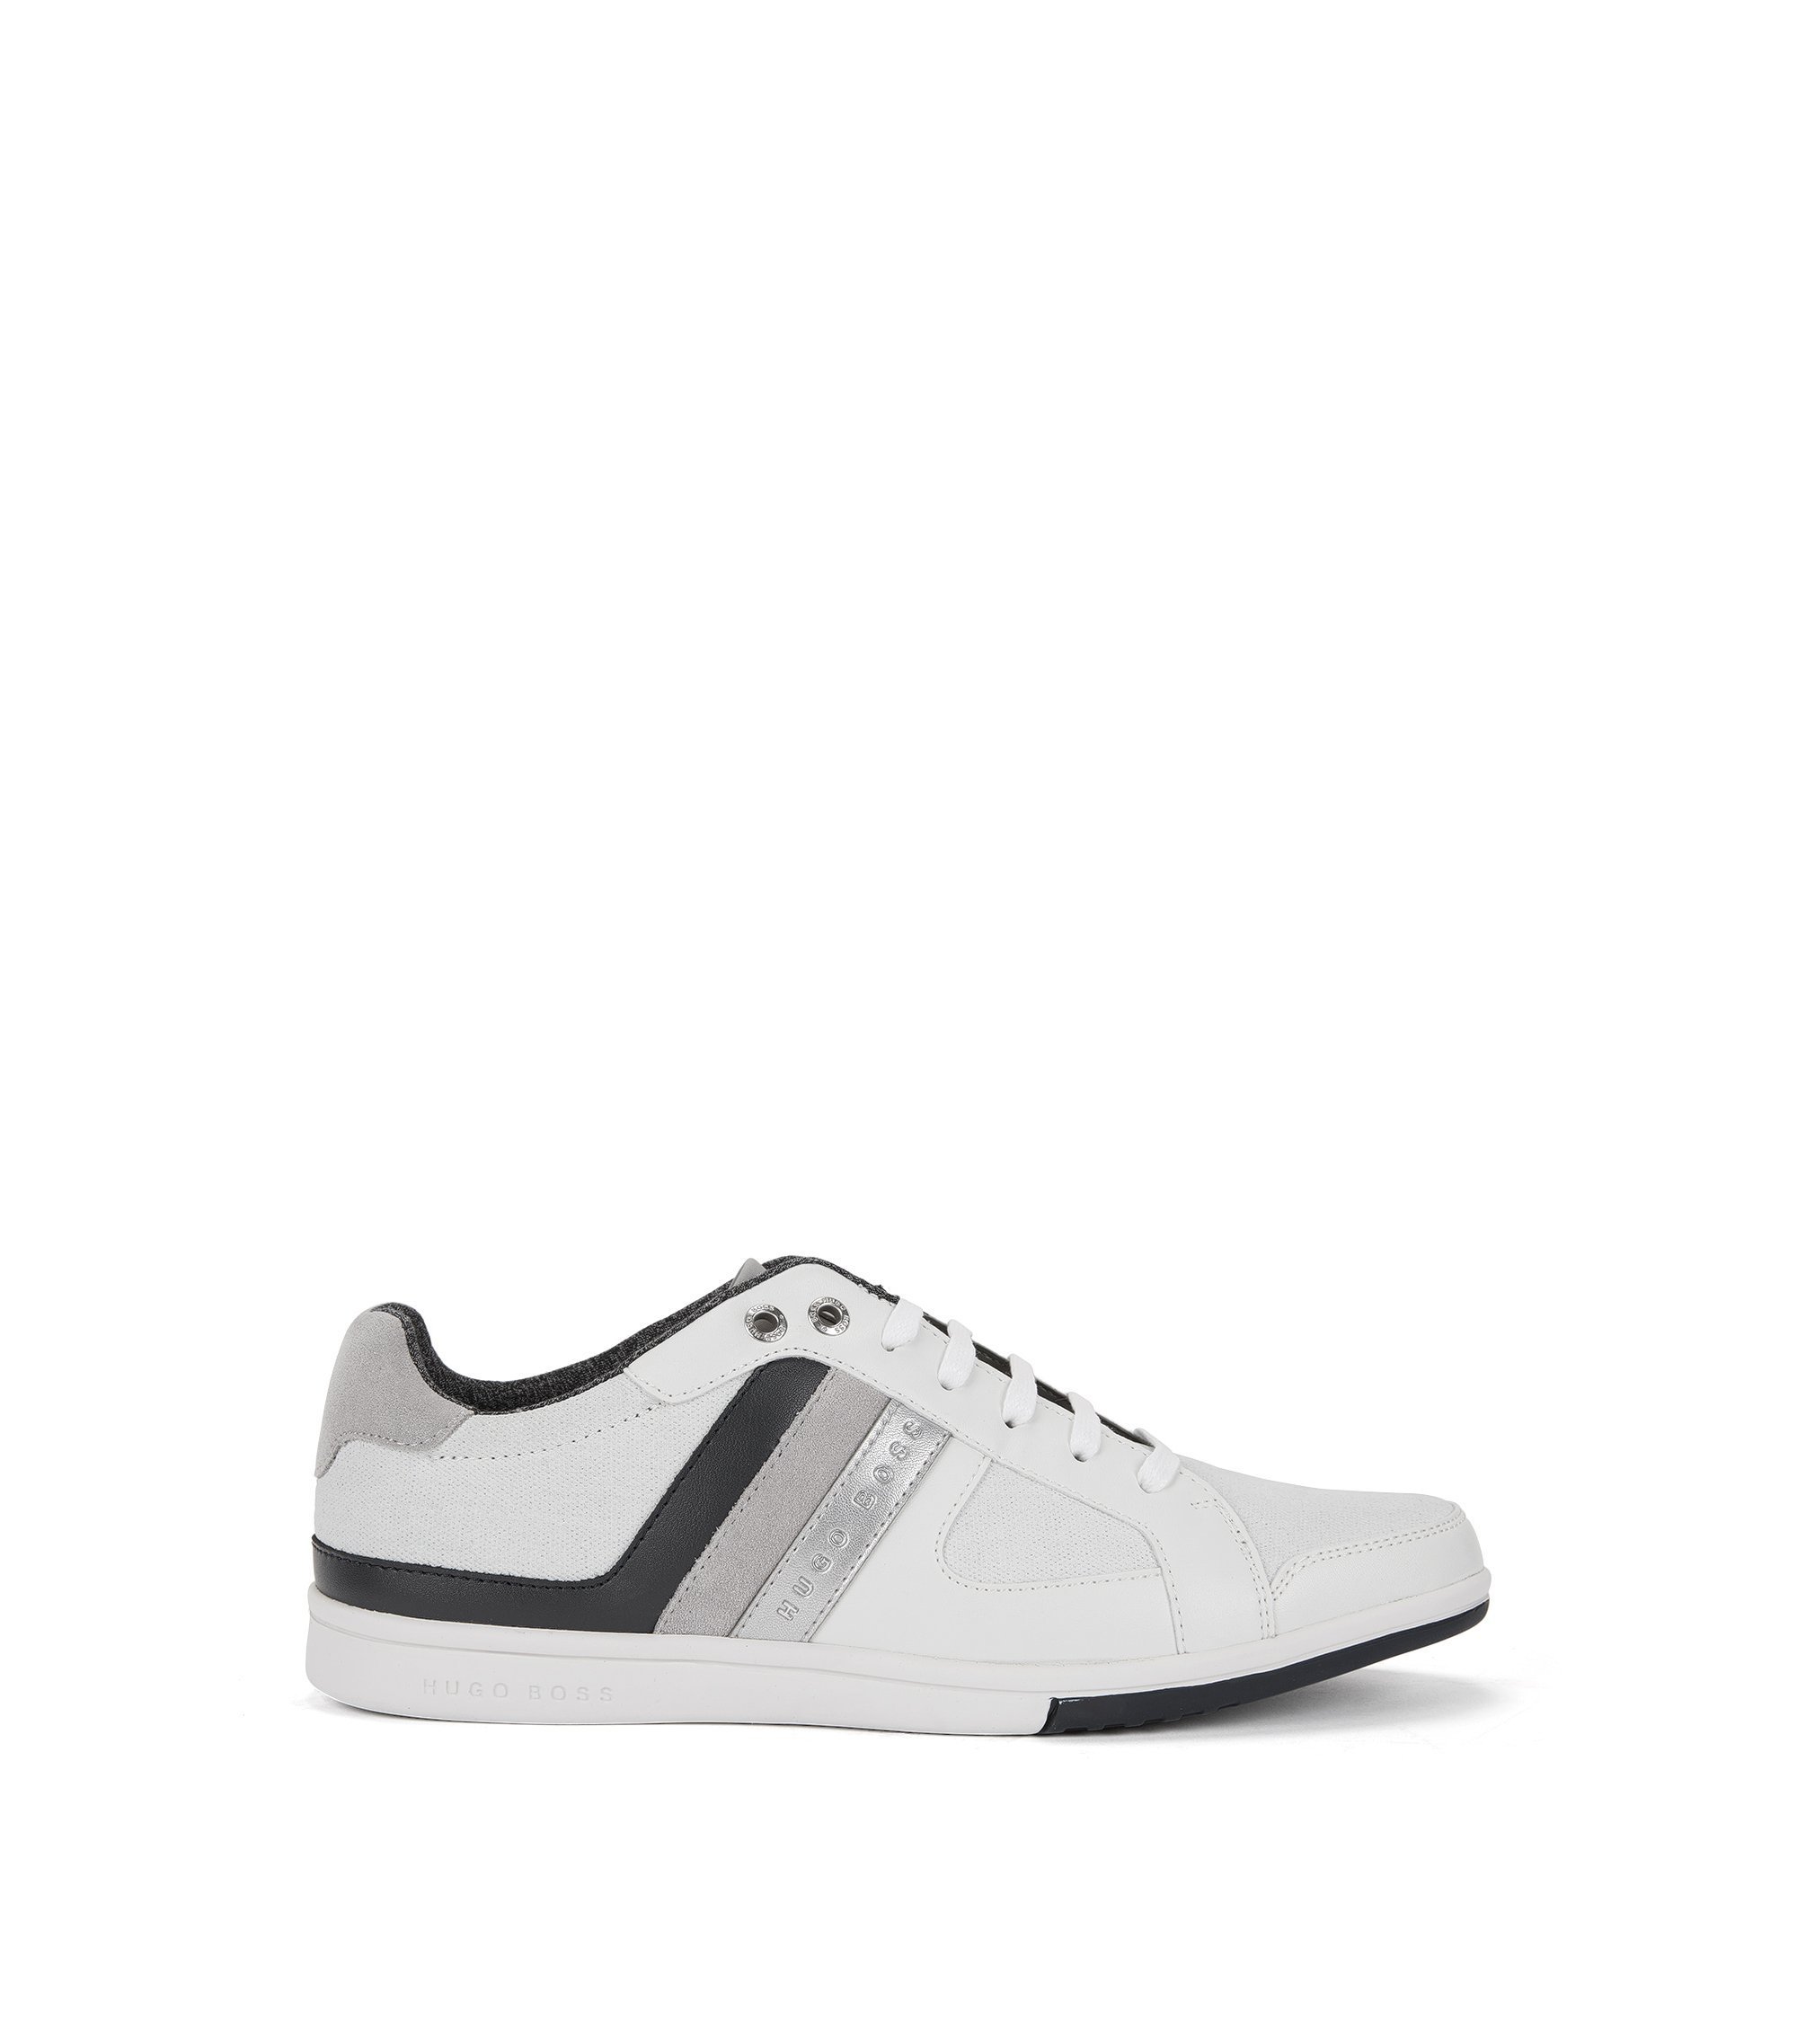 Coated Mesh Sneaker | Metro Tenn DNC, White